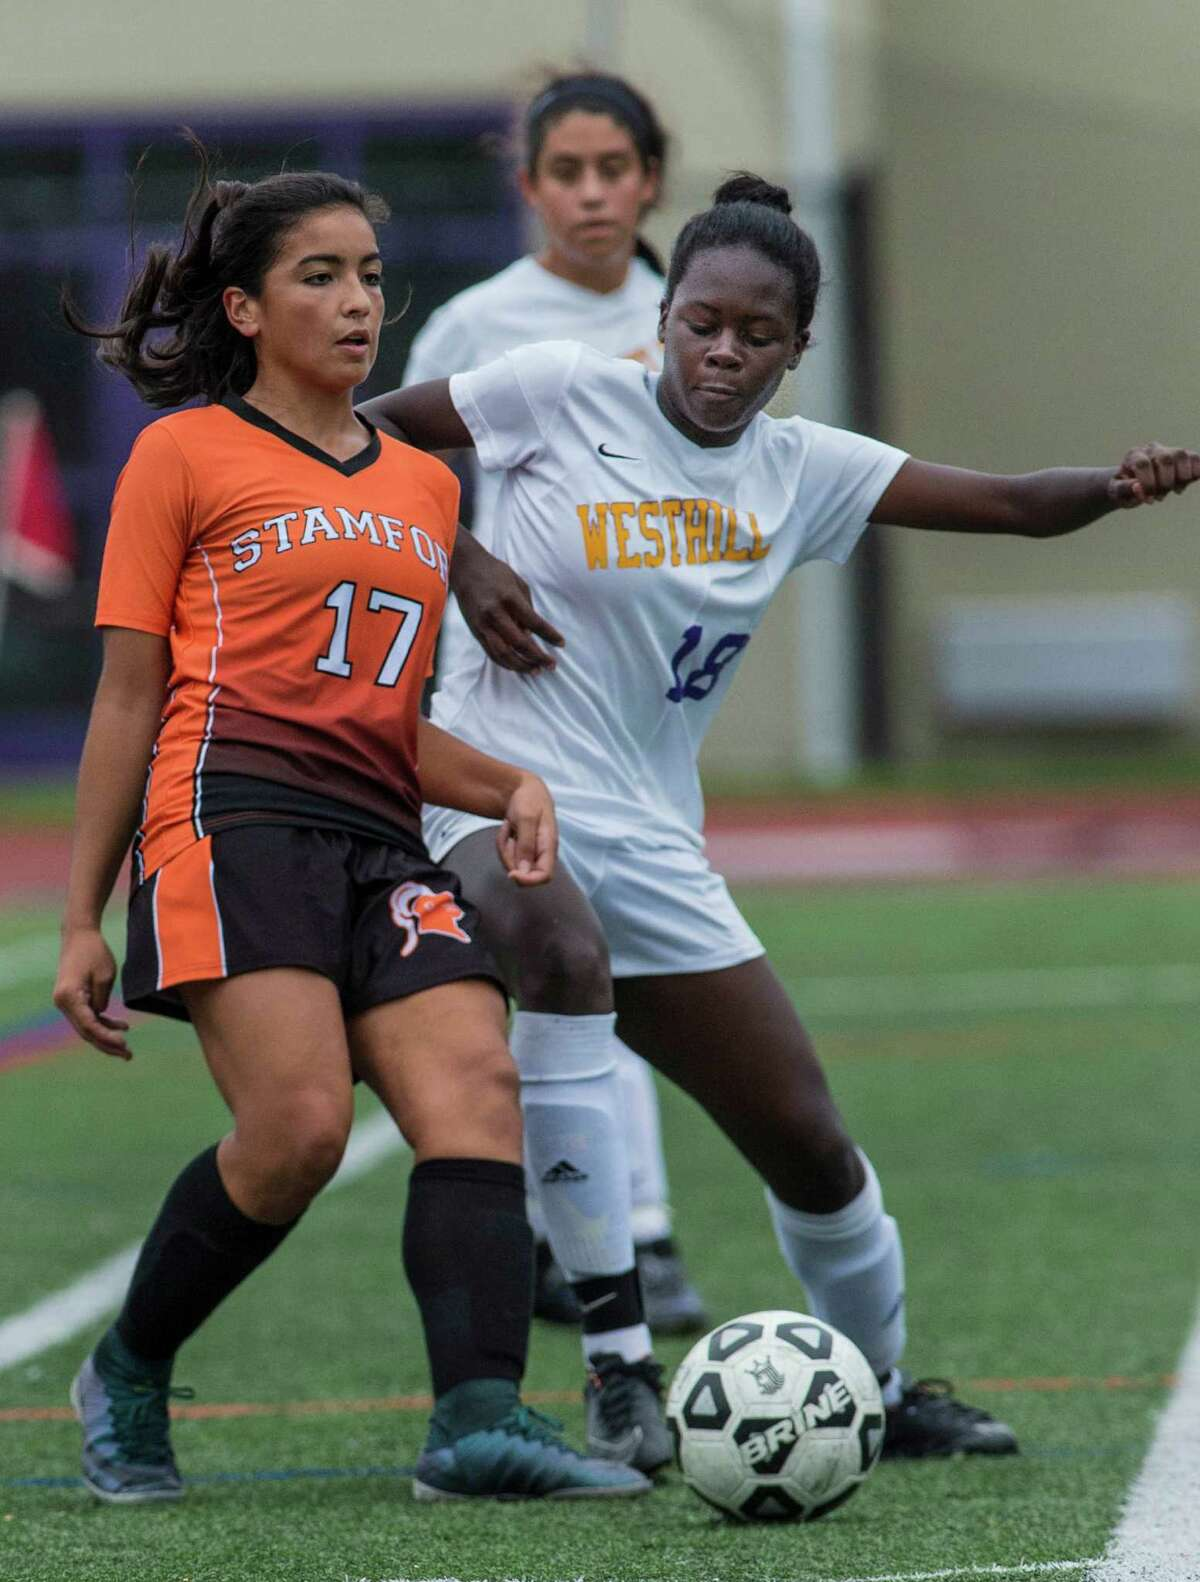 Westhill High School?'s Chelsea Domond battles Stamford High School?'s Fabiano Bueno for the ball during a girls soccer game played at Westhill High School, Stamford, CT. Saturday, October 8, 2016.